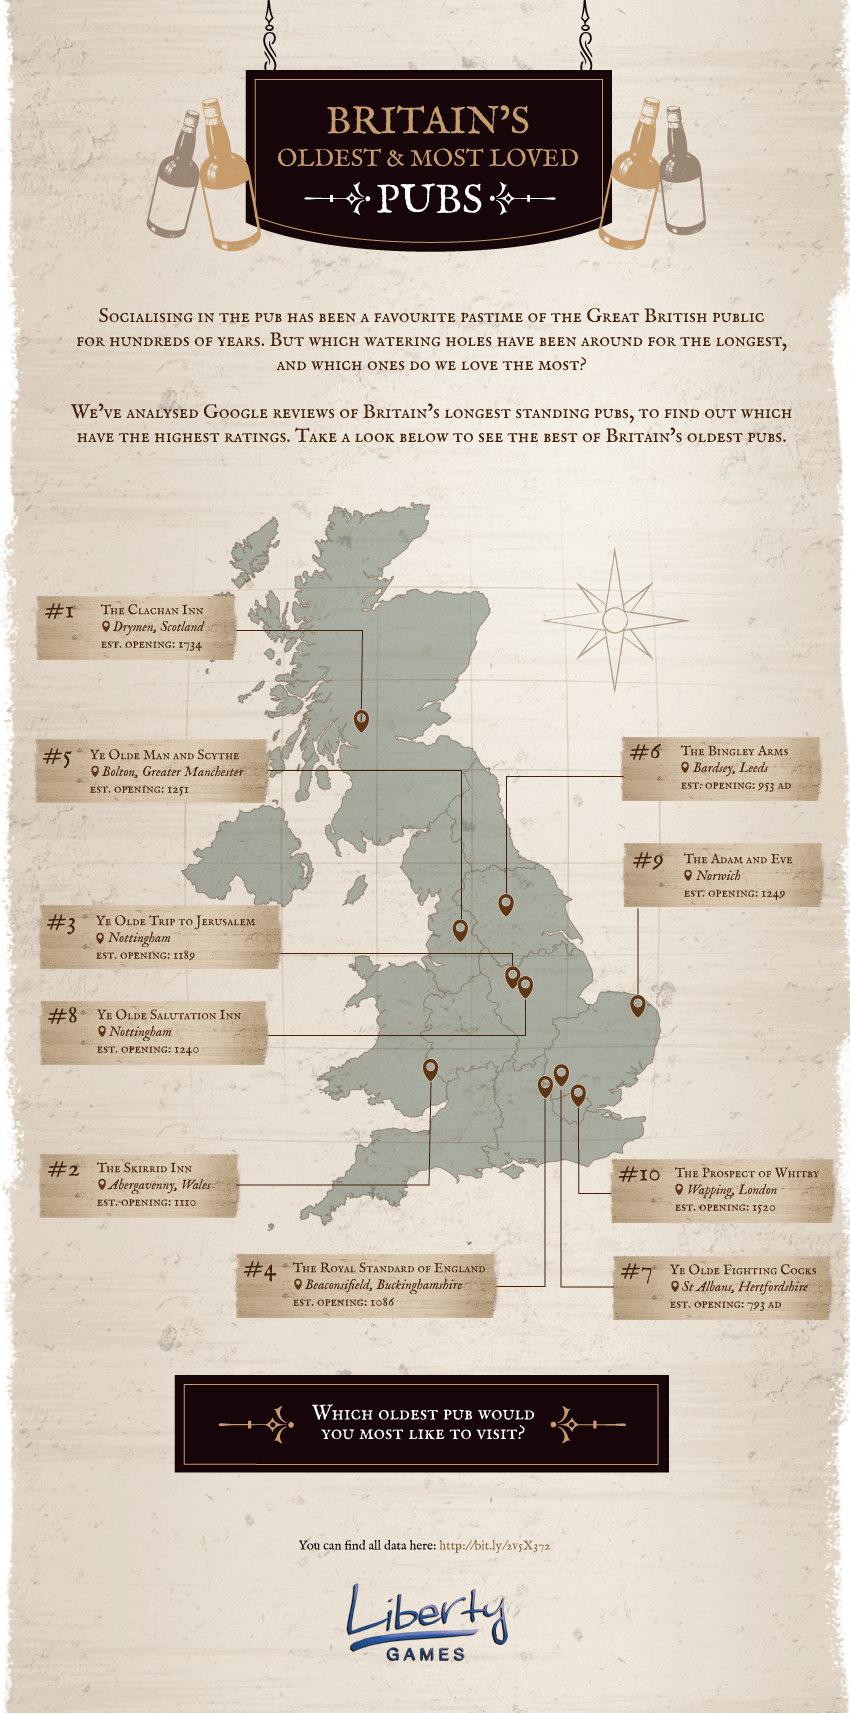 The Oldest Pubs in Britain